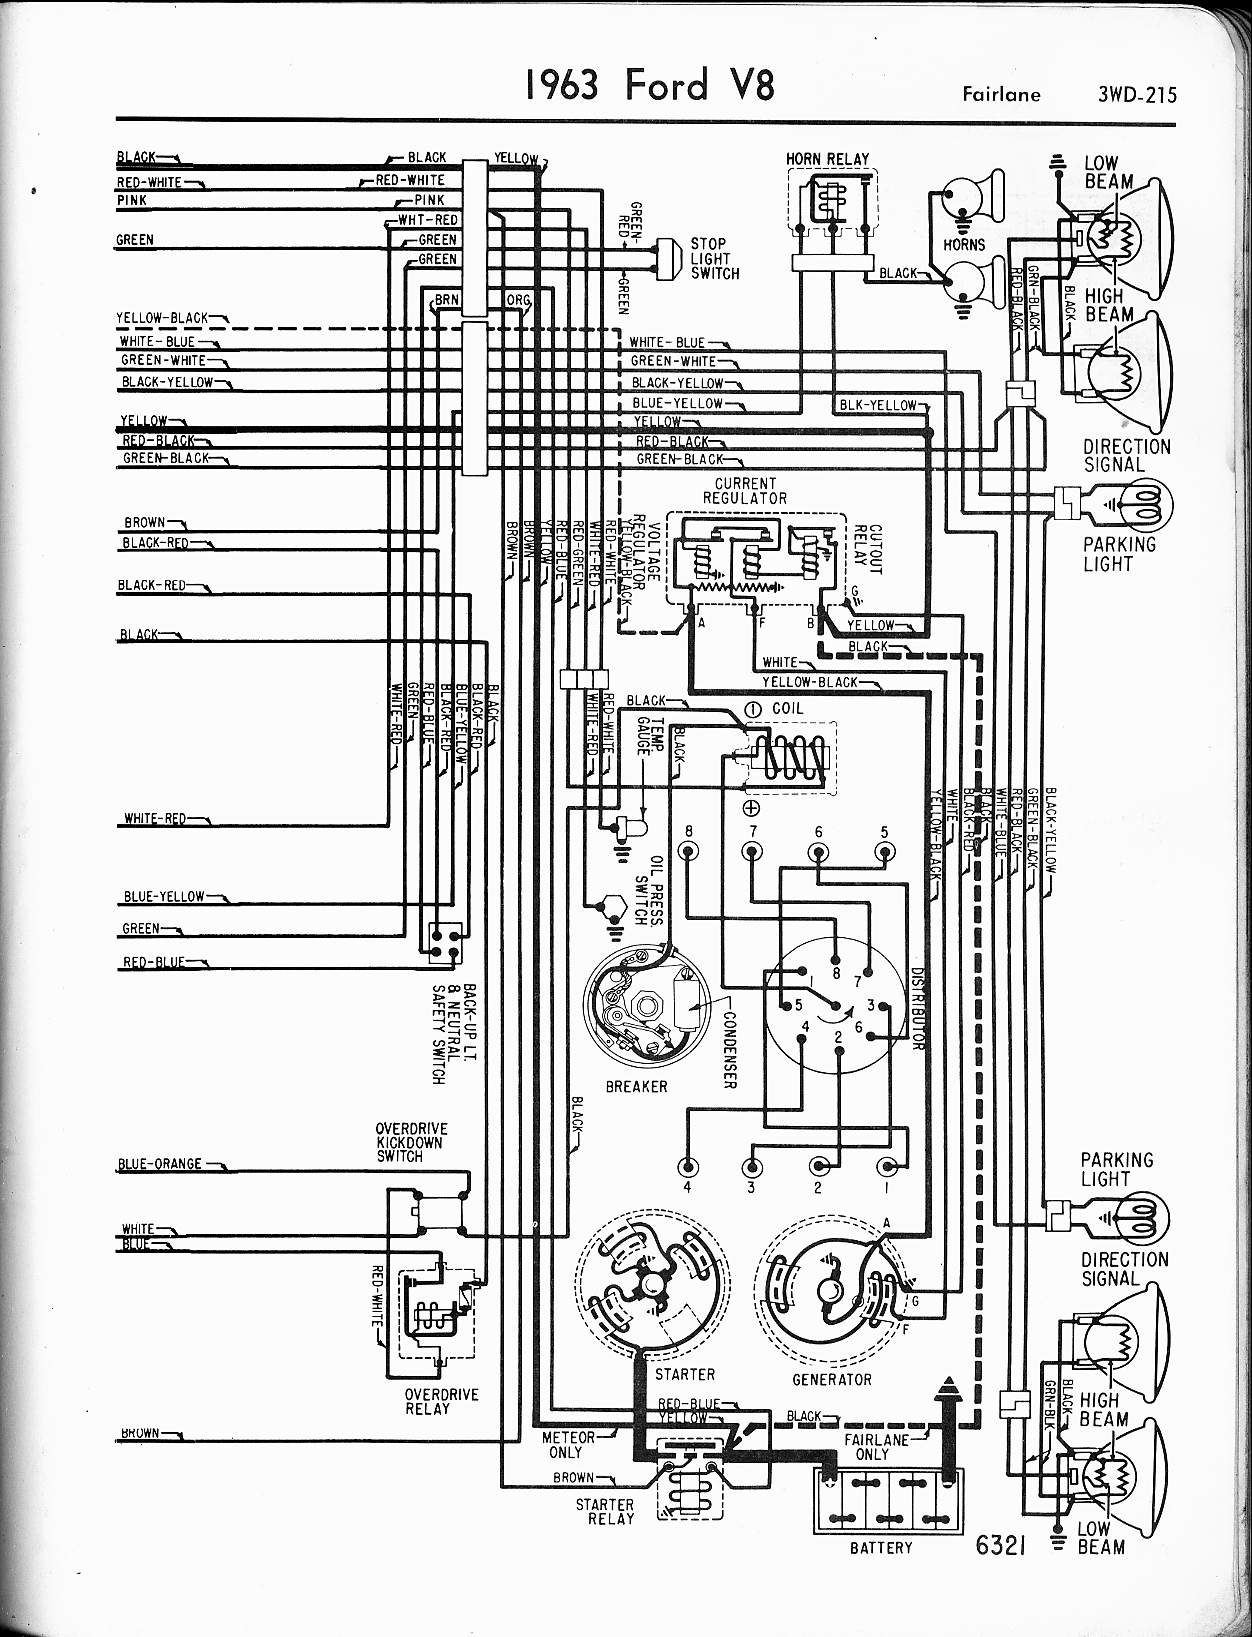 1955 ford fairlane wiring diagram wiring diagrams clicks